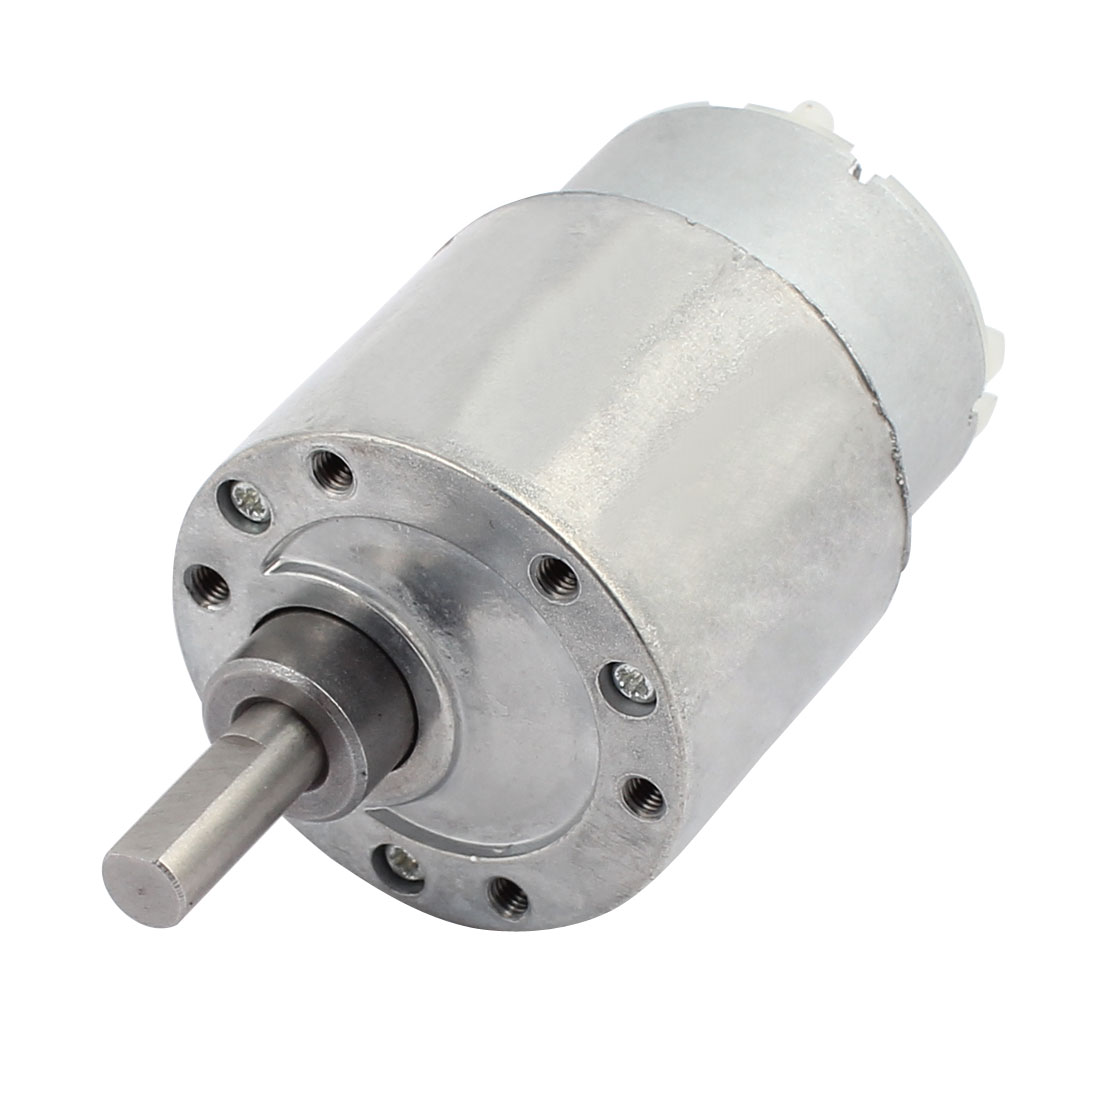 37mm Diameter Gearbox 3.5RPM 12V 0.07A DC Geared Motor